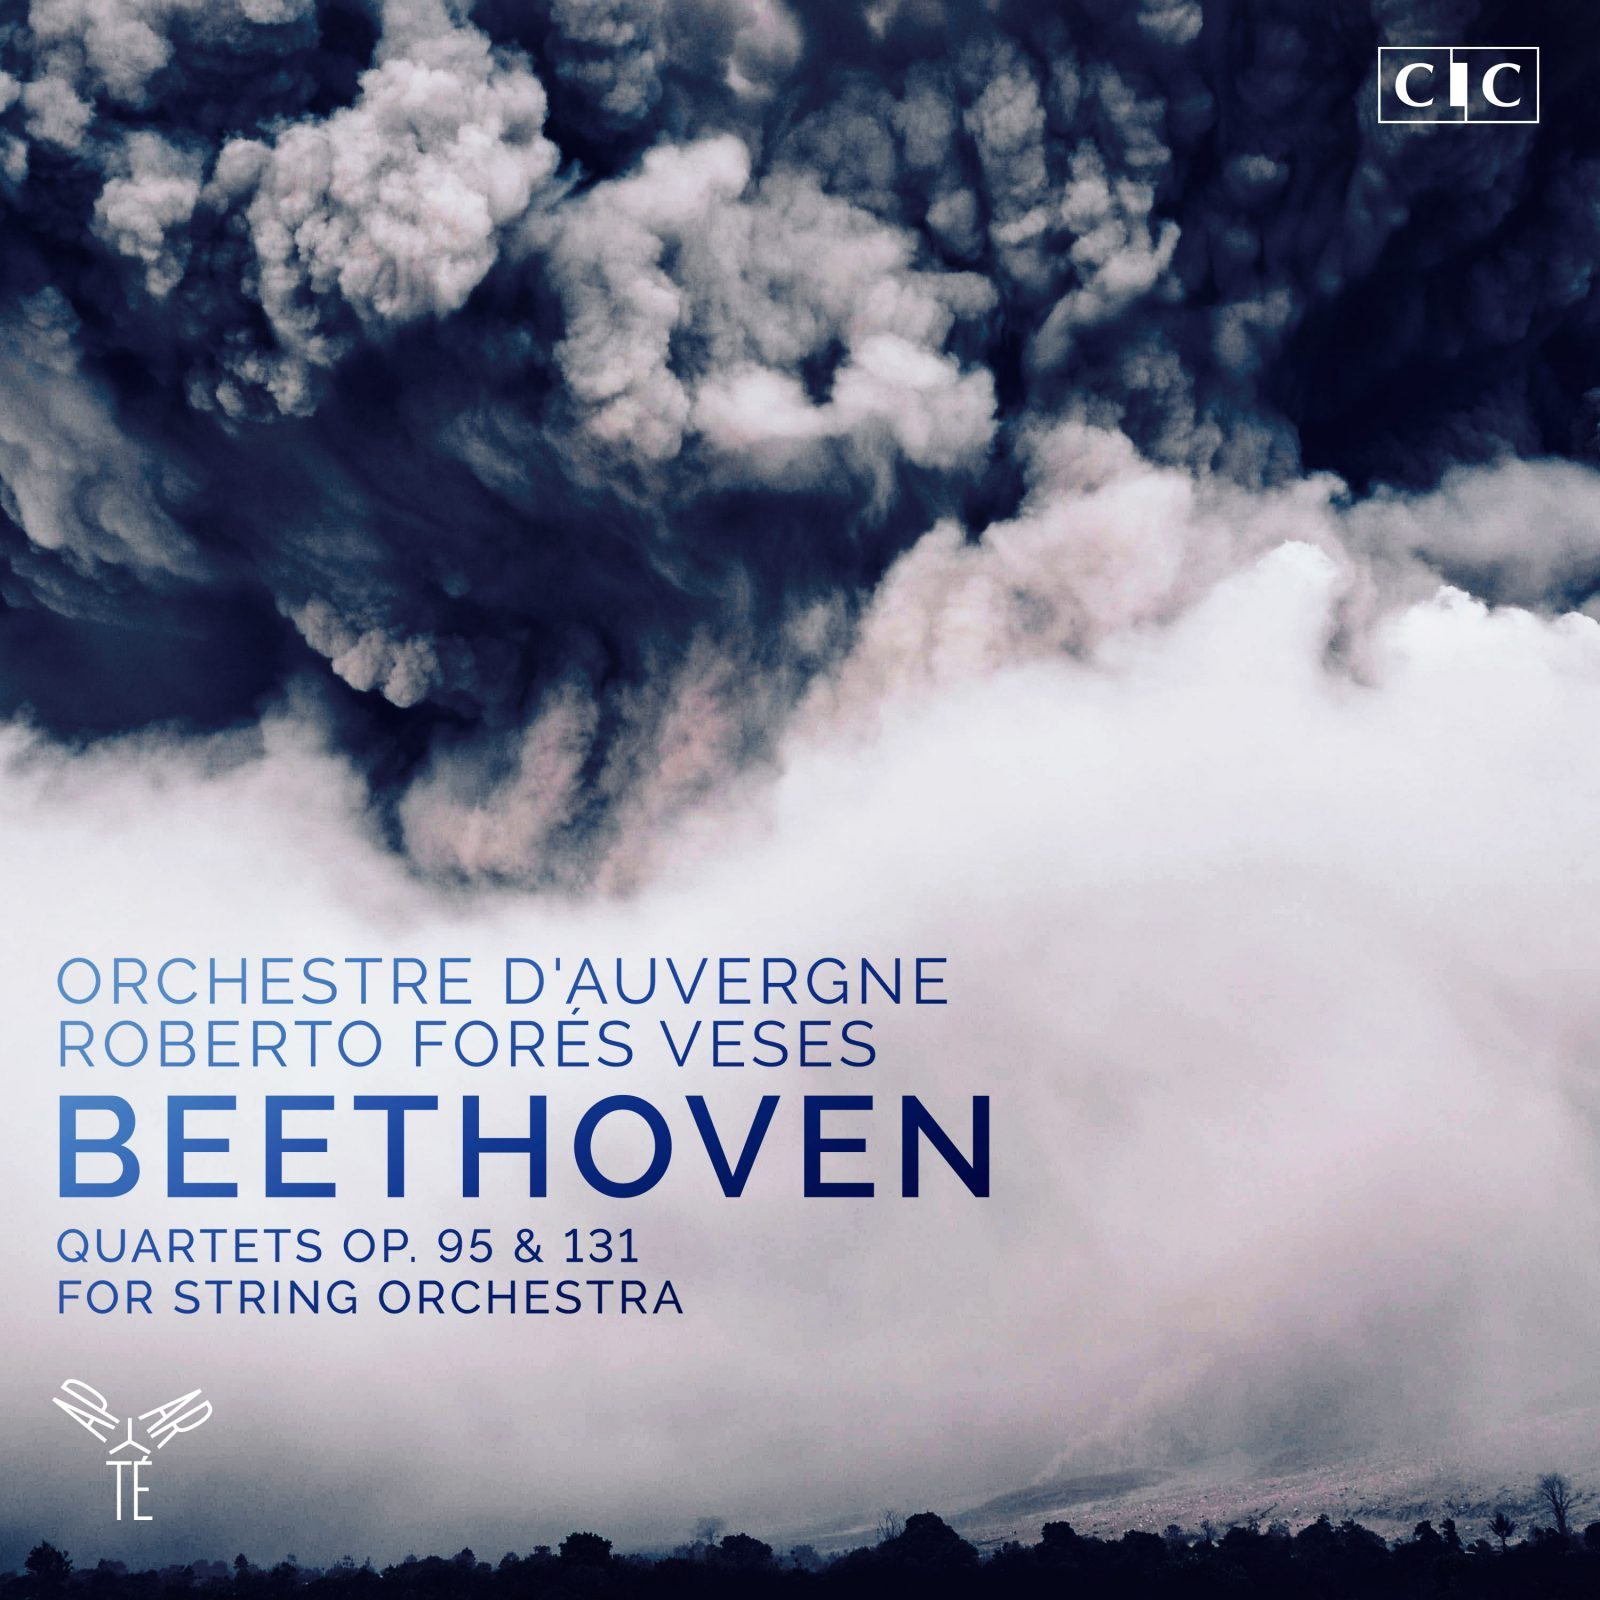 Beethoven: Quartets for string orchestra